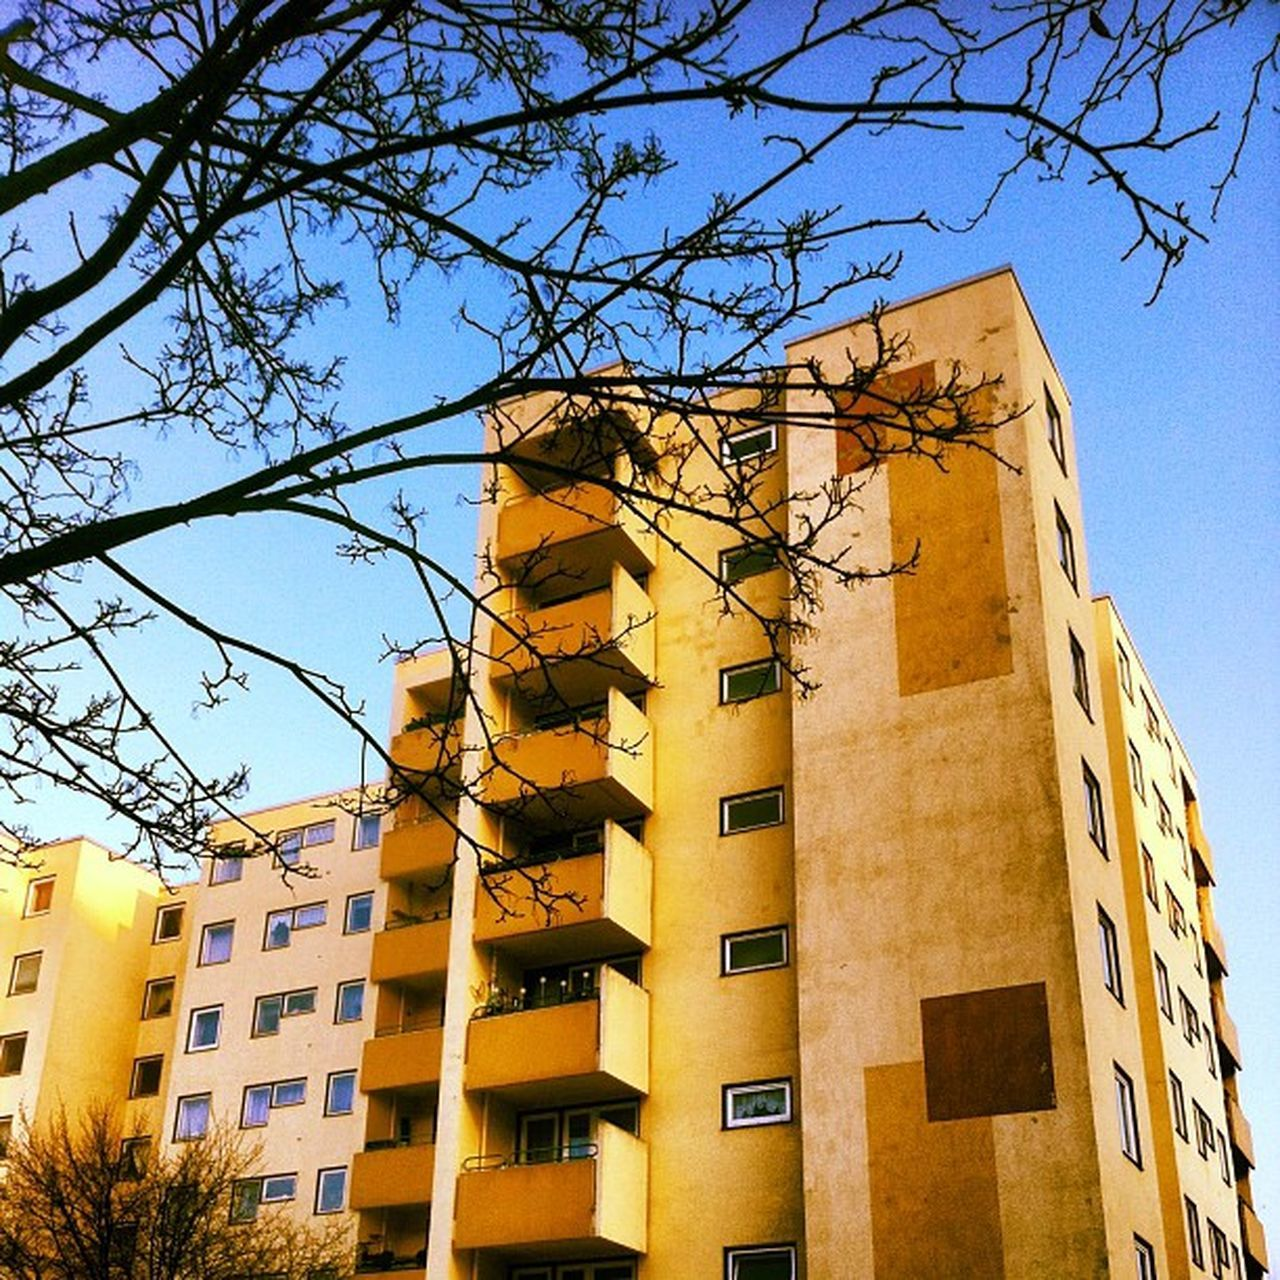 architecture, building exterior, low angle view, built structure, day, no people, outdoors, tree, sky, branch, city